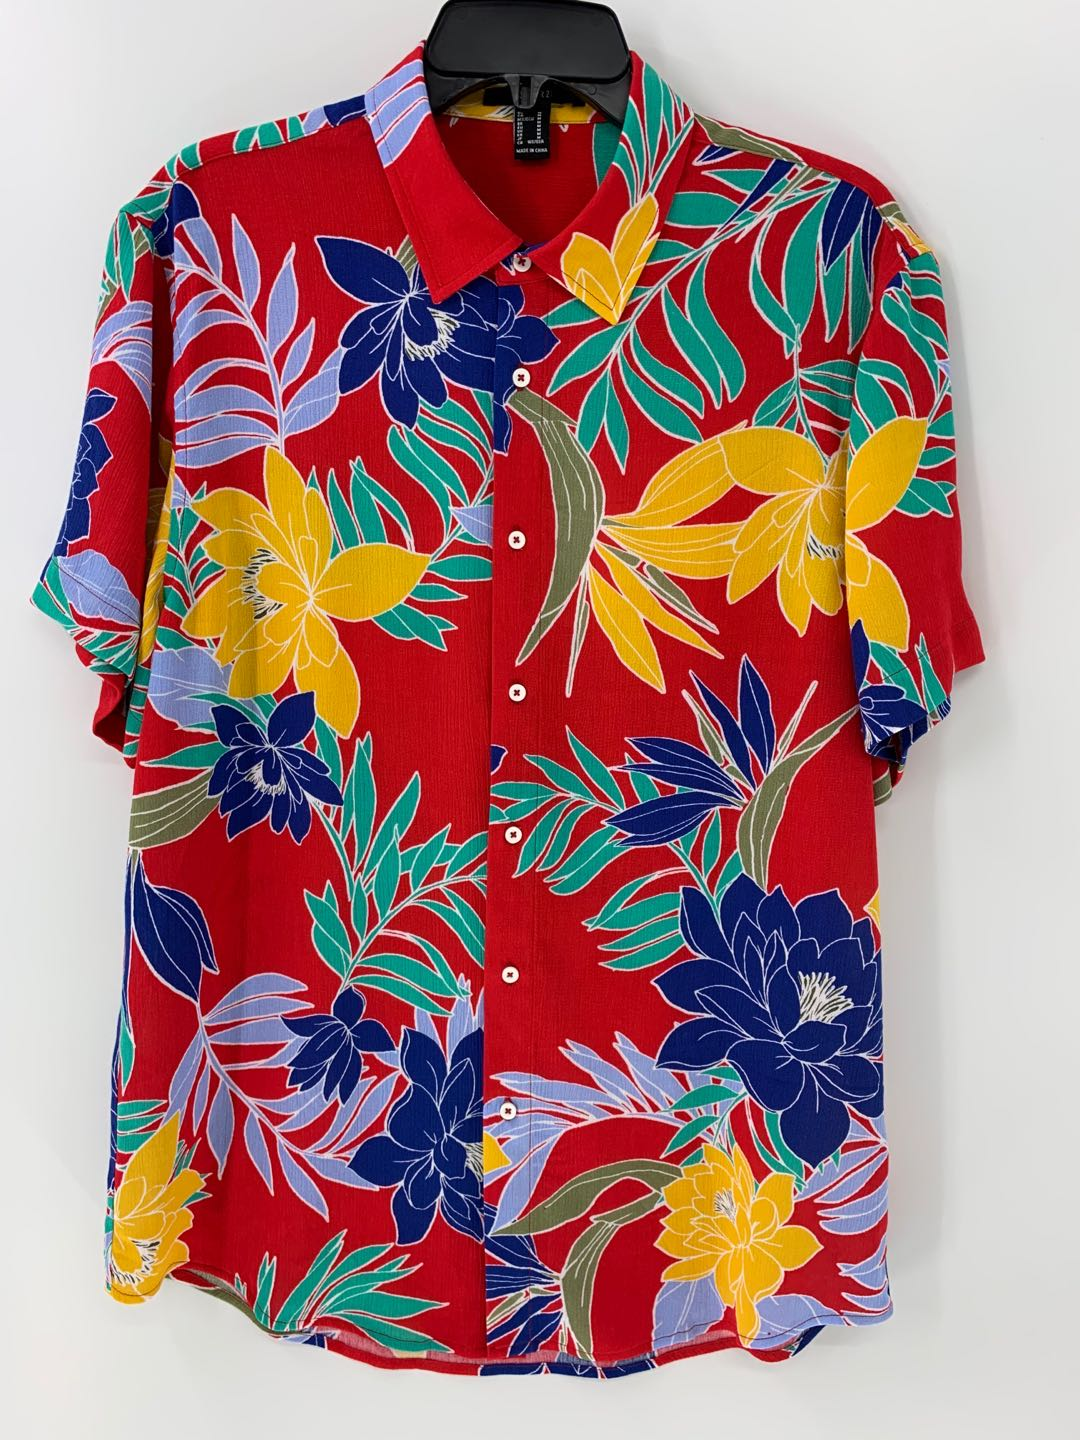 Men's Tropical Floral Print Shirt